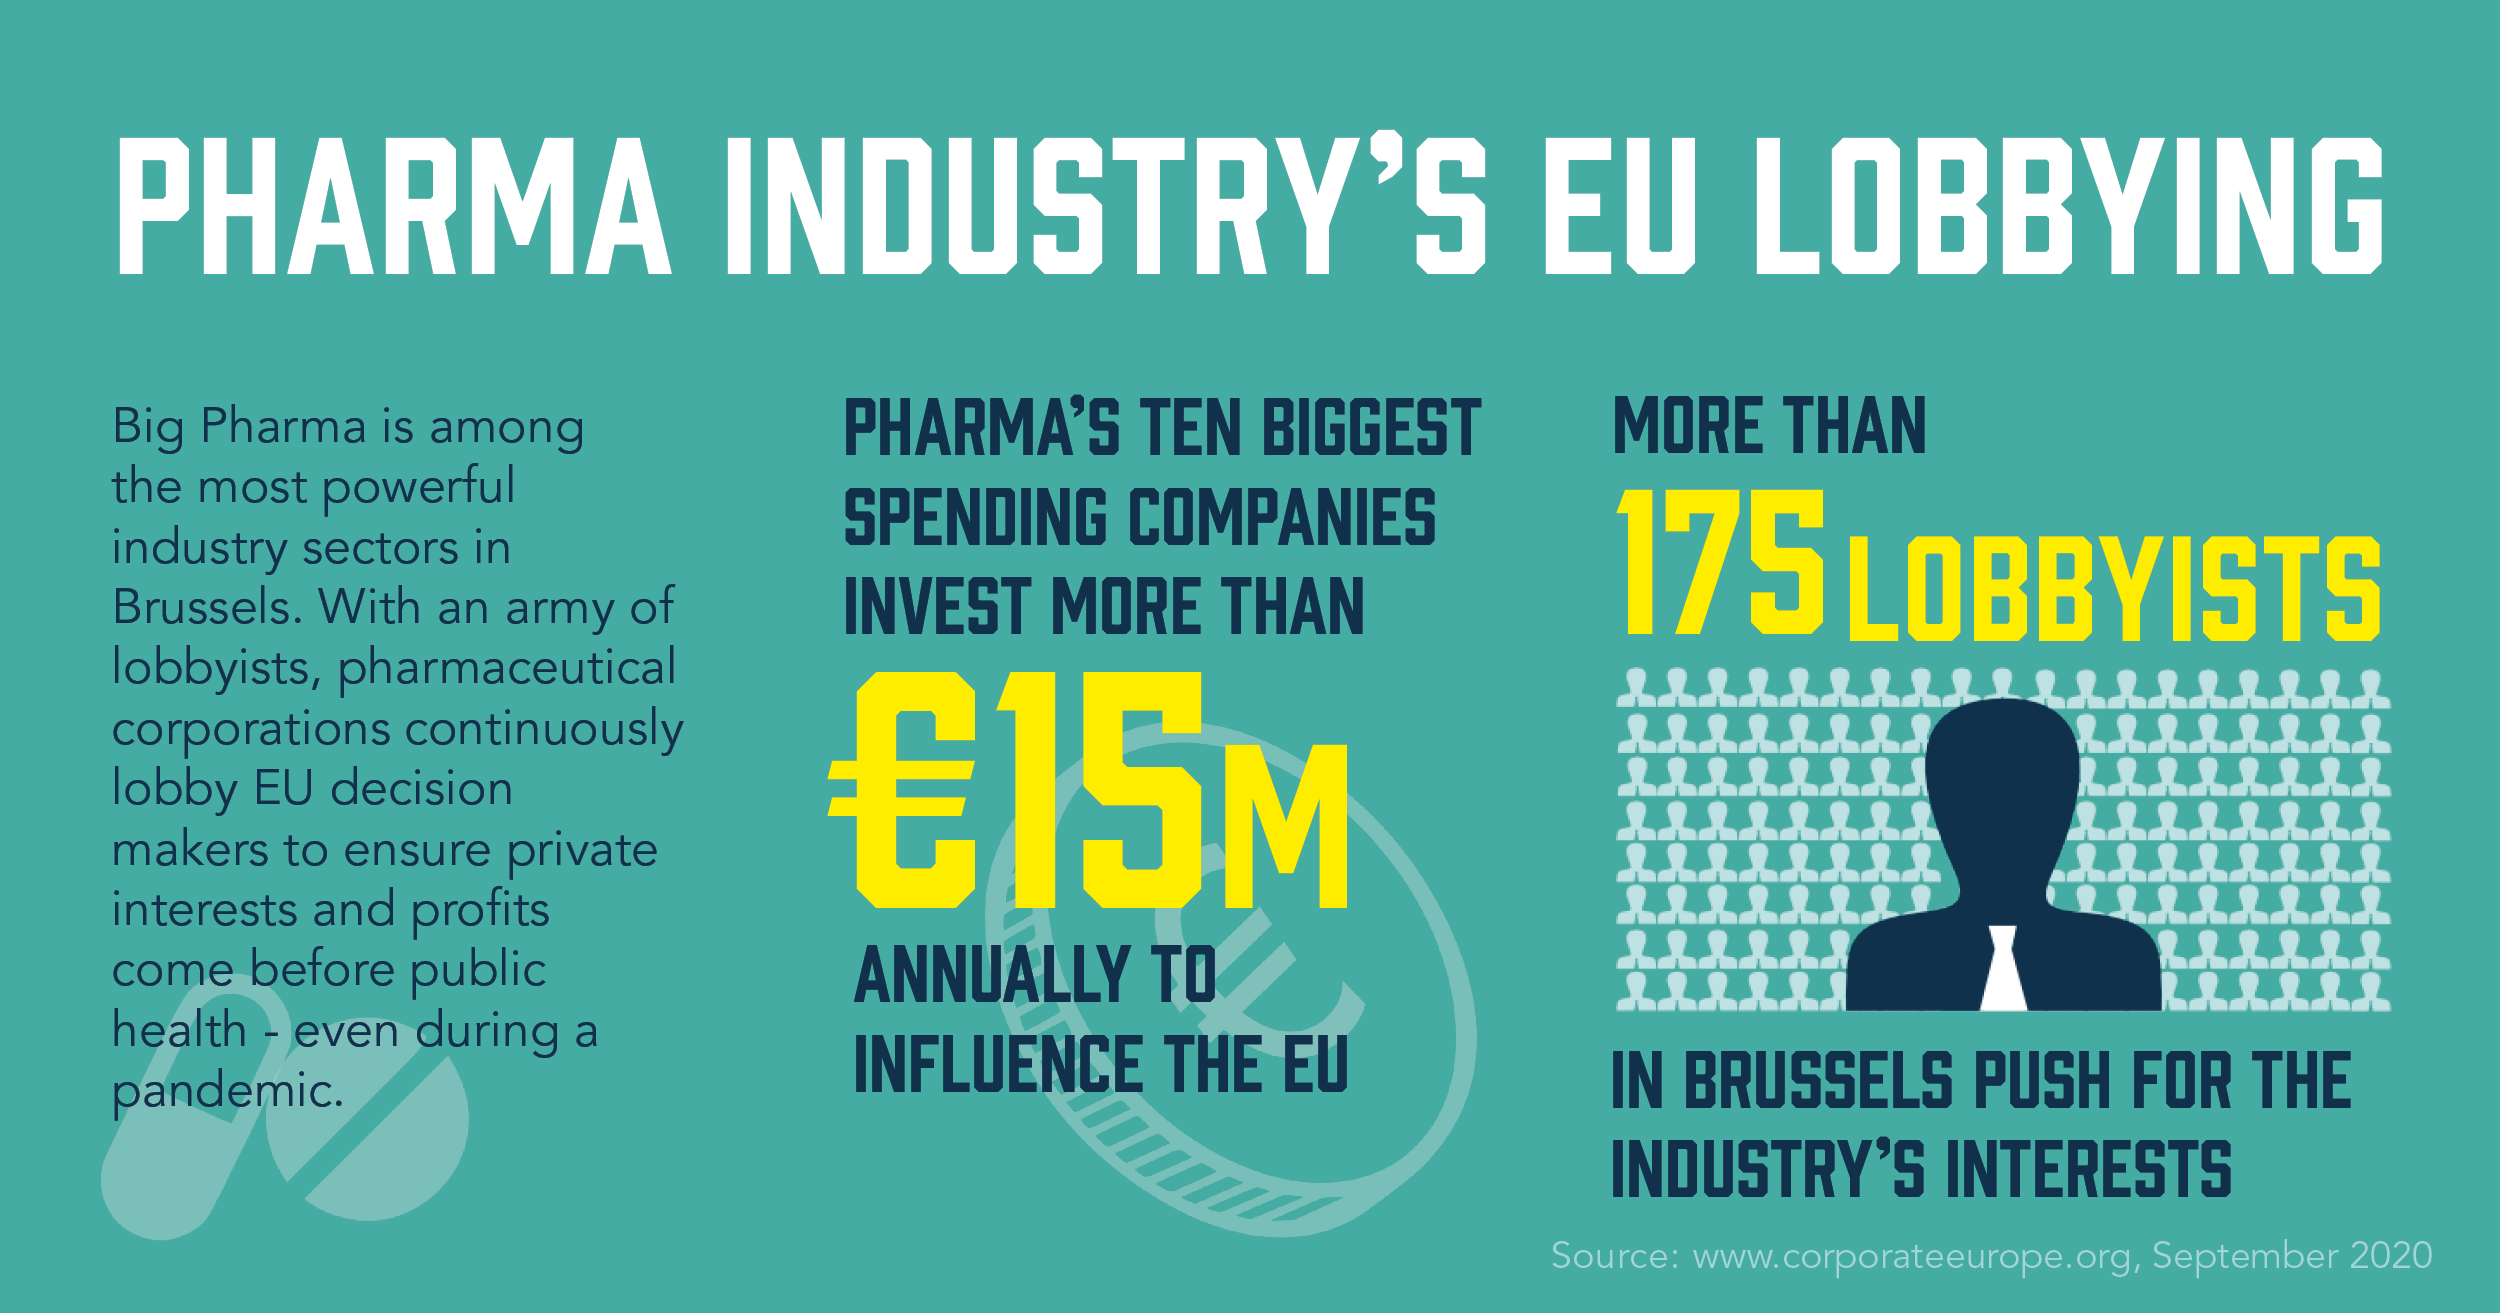 Power and profit during a pandemic | Corporate Europe Observatory